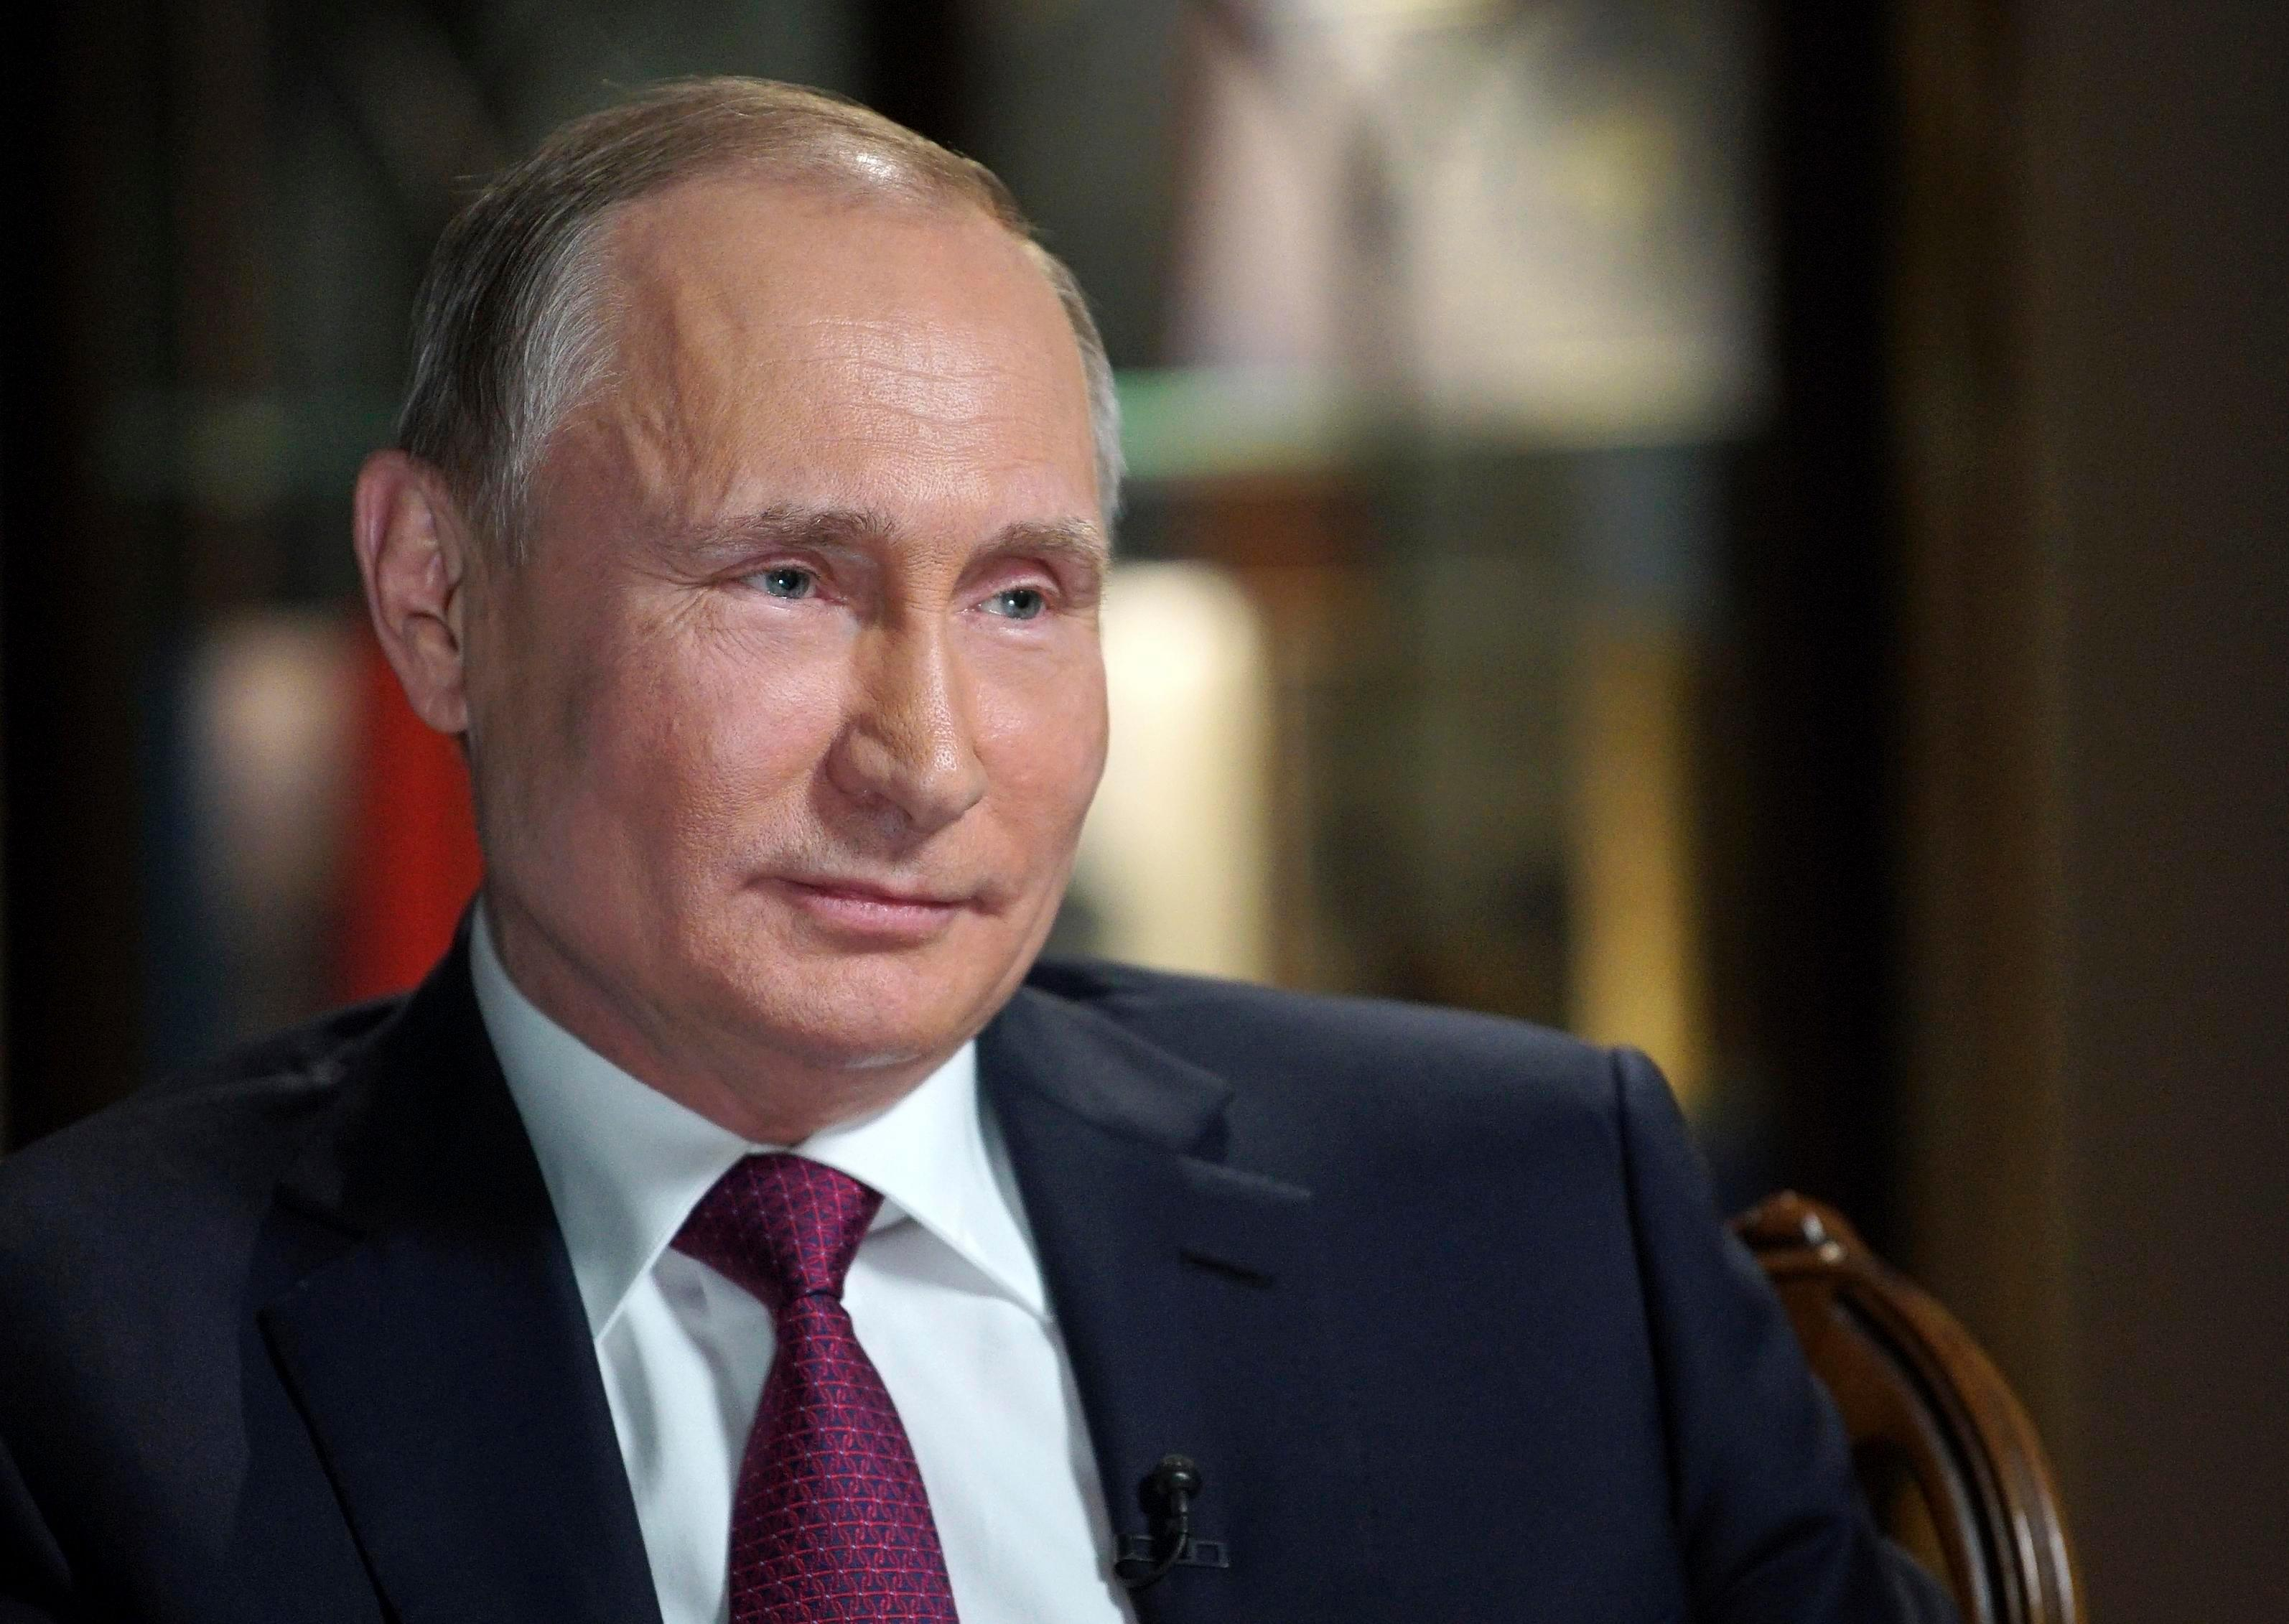 Putin keeps meddling in the West because our politicians have been too weak to push back, ex-Nato leader warns after Salisbury attack